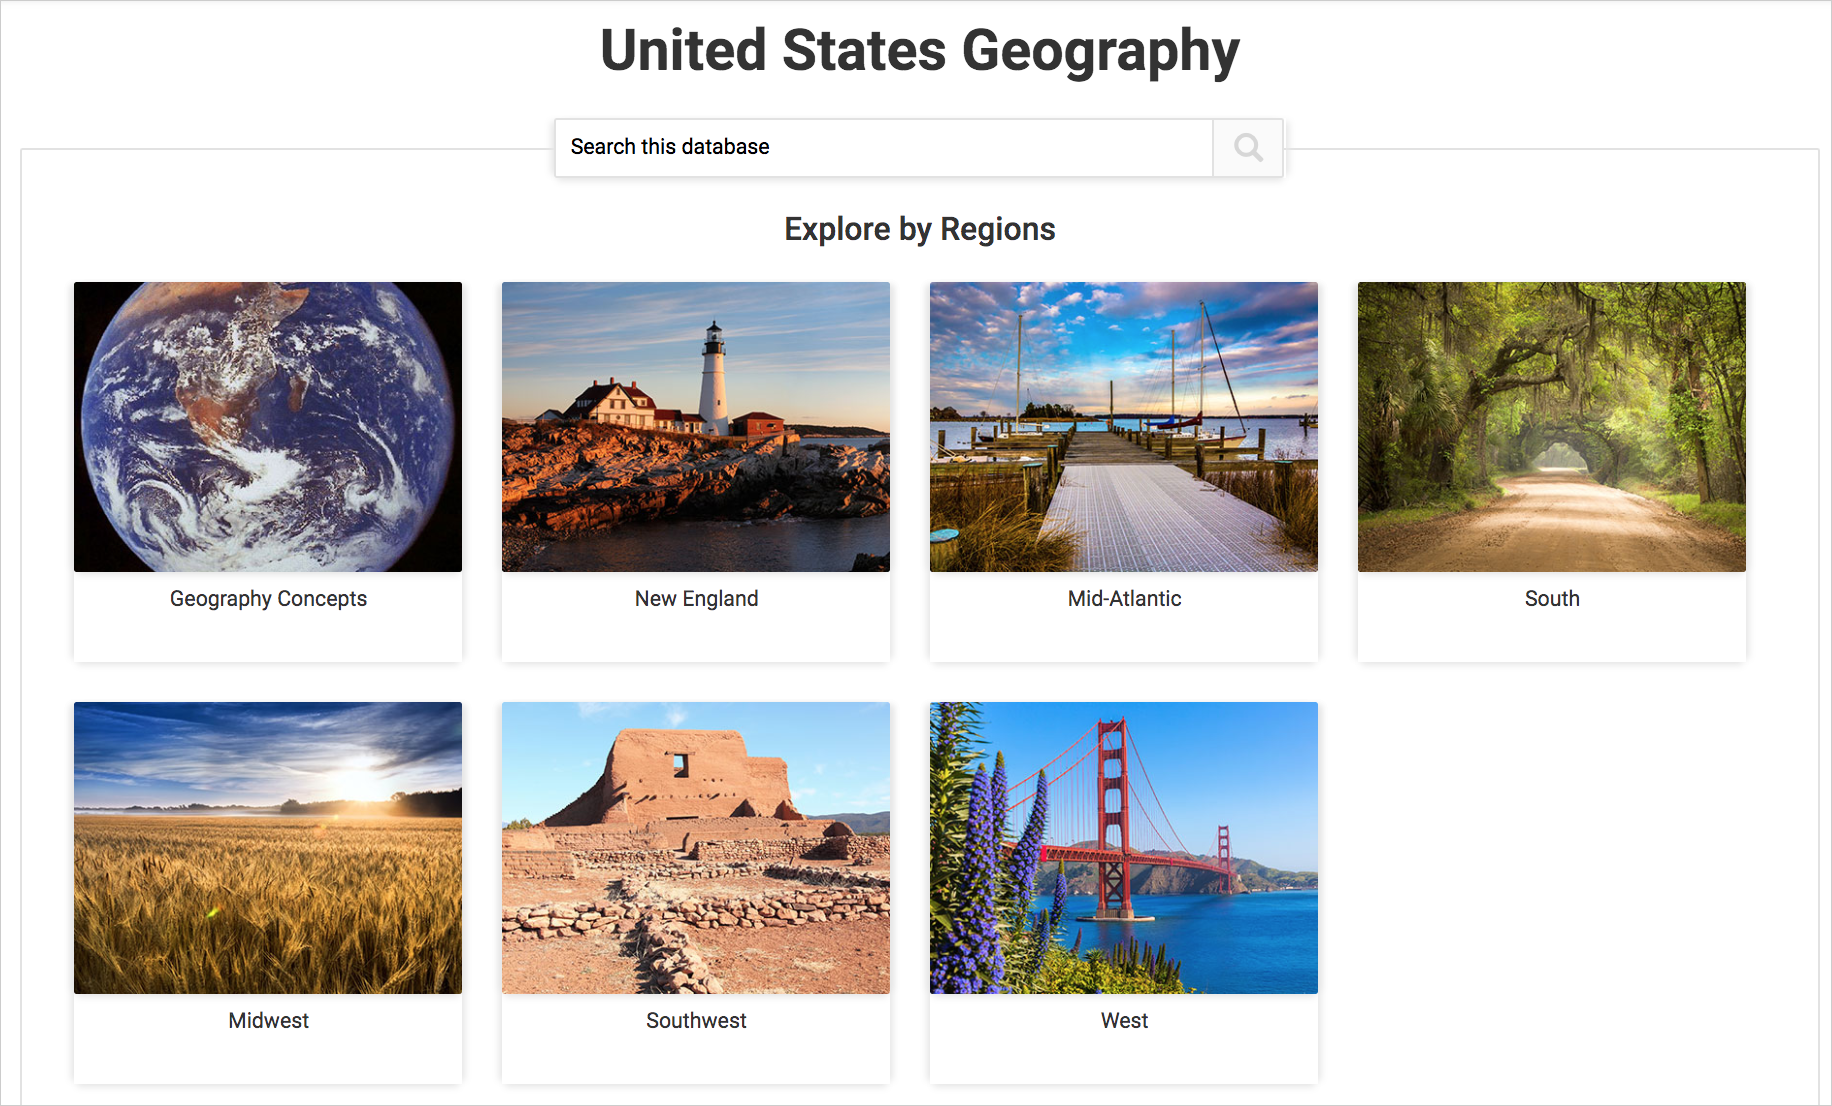 United States Geography cover image